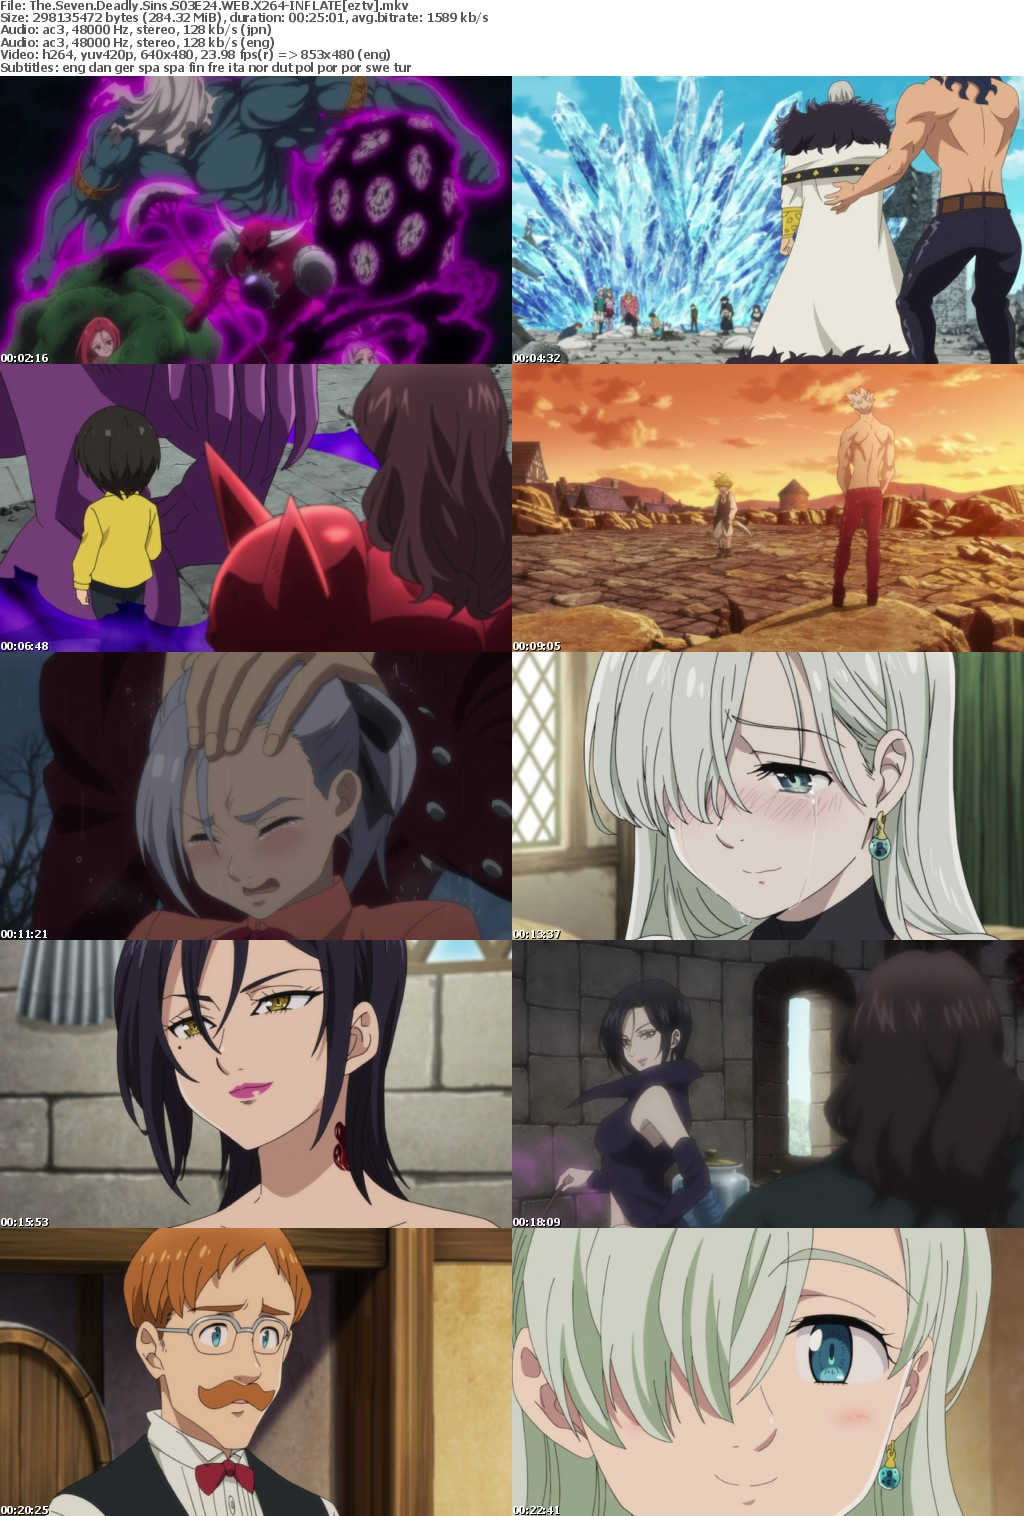 The Seven Deadly Sins S03E24 WEB X264-INFLATE